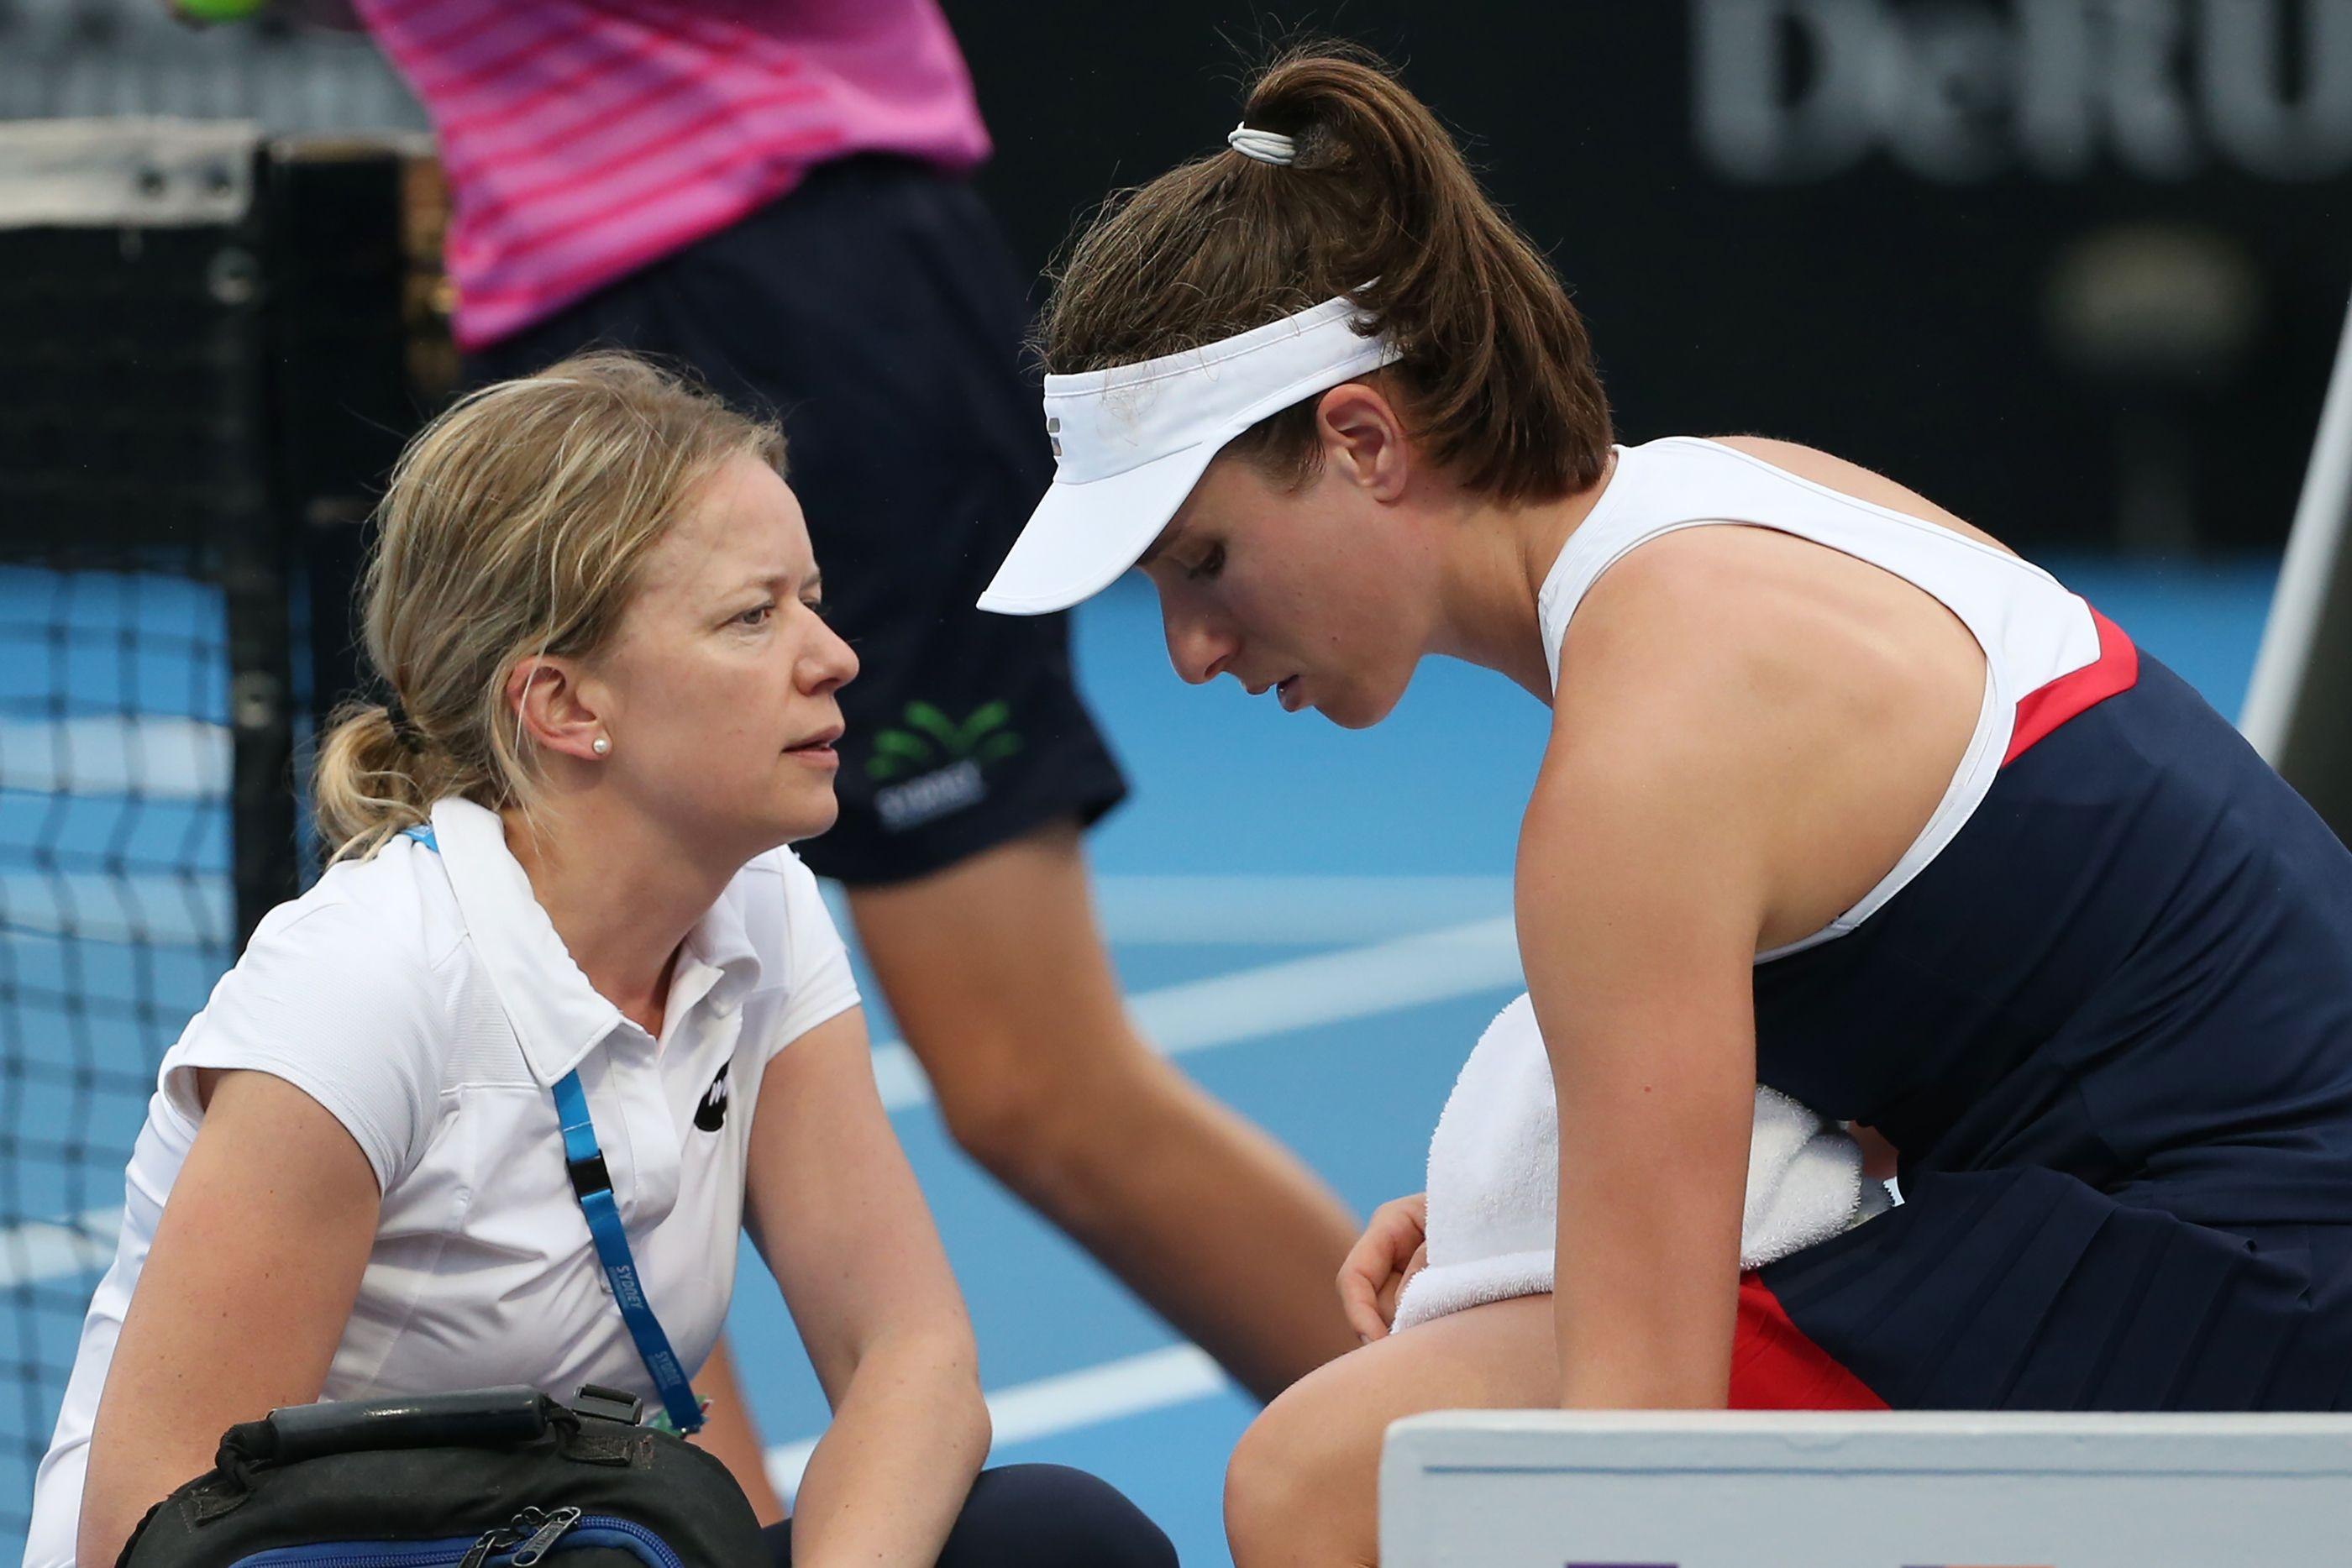 Johanna Konta was forced to retire from the Sydney International due to a neck injury